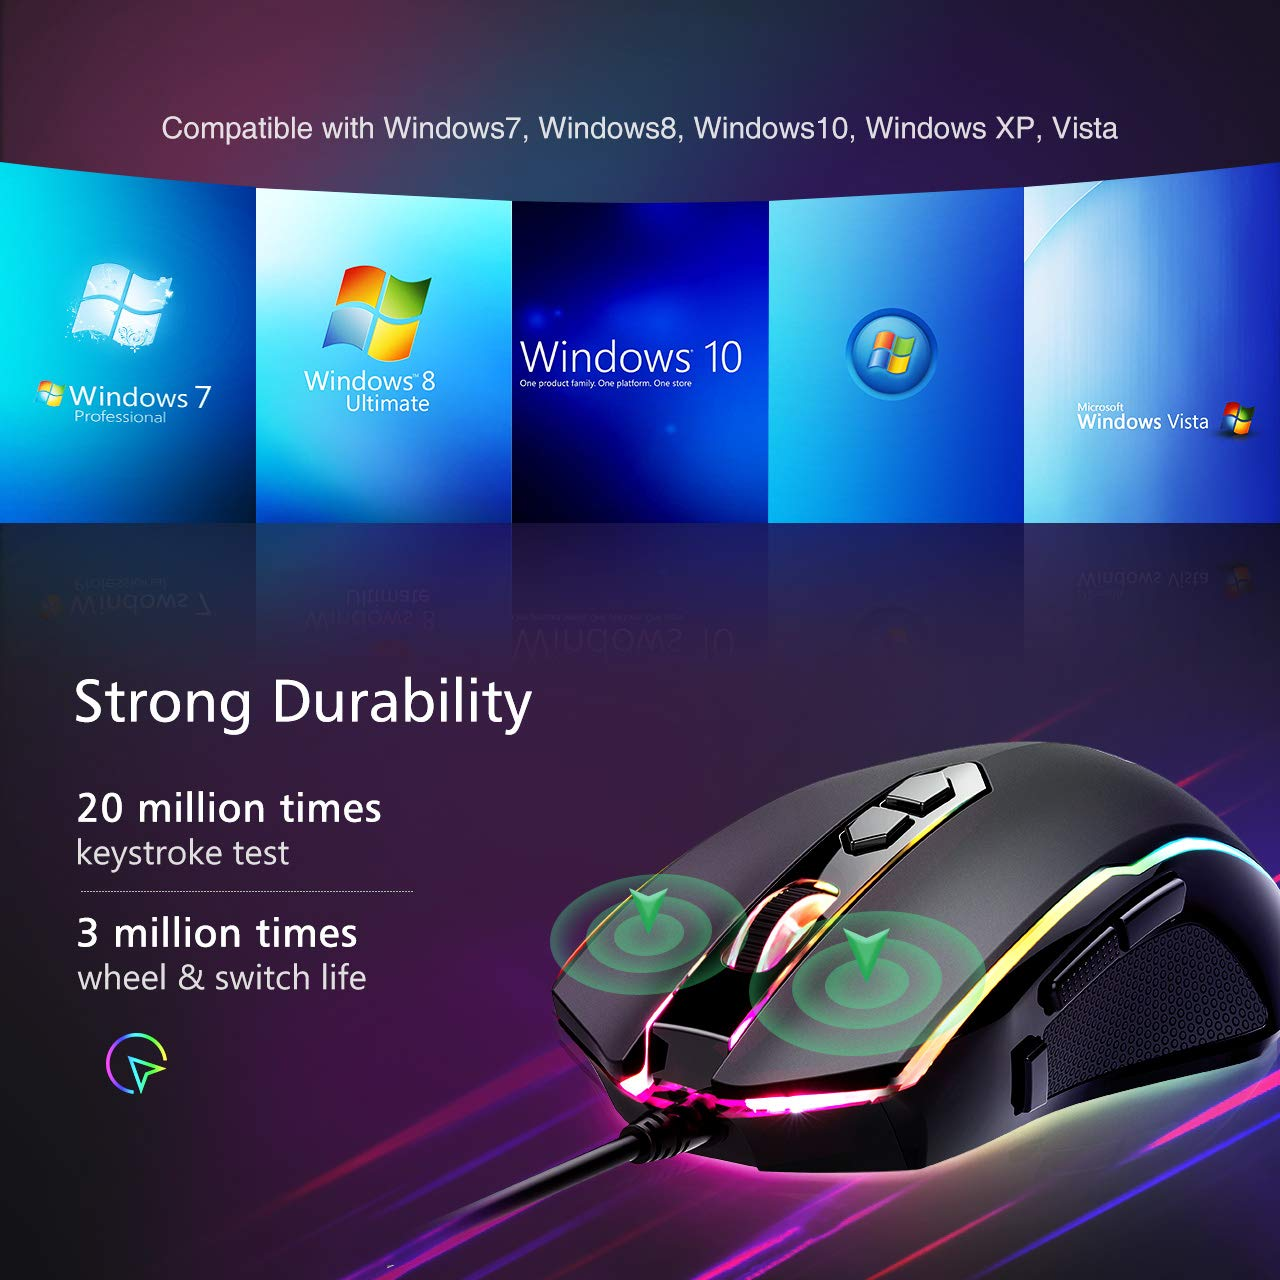 Pictek 7200DPI 8-Button Chroma RGB Wired Gaming Mouse w